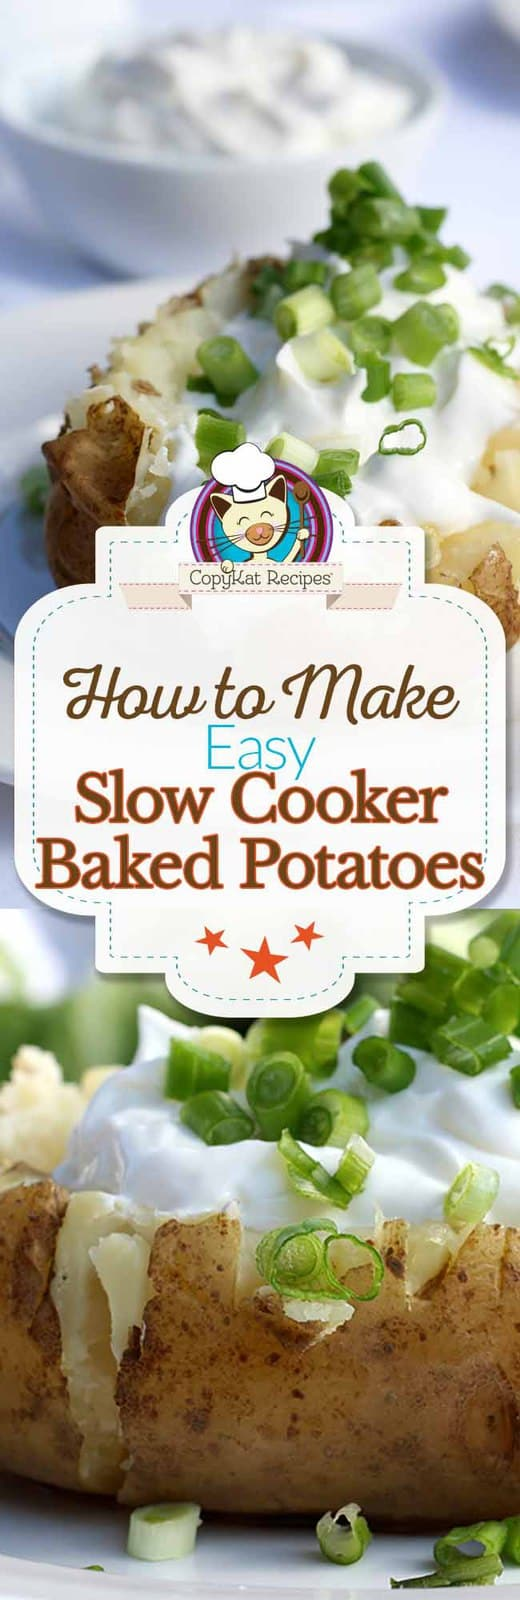 Learn how to make baked potatoes in your slow cooker, its so easy to do!